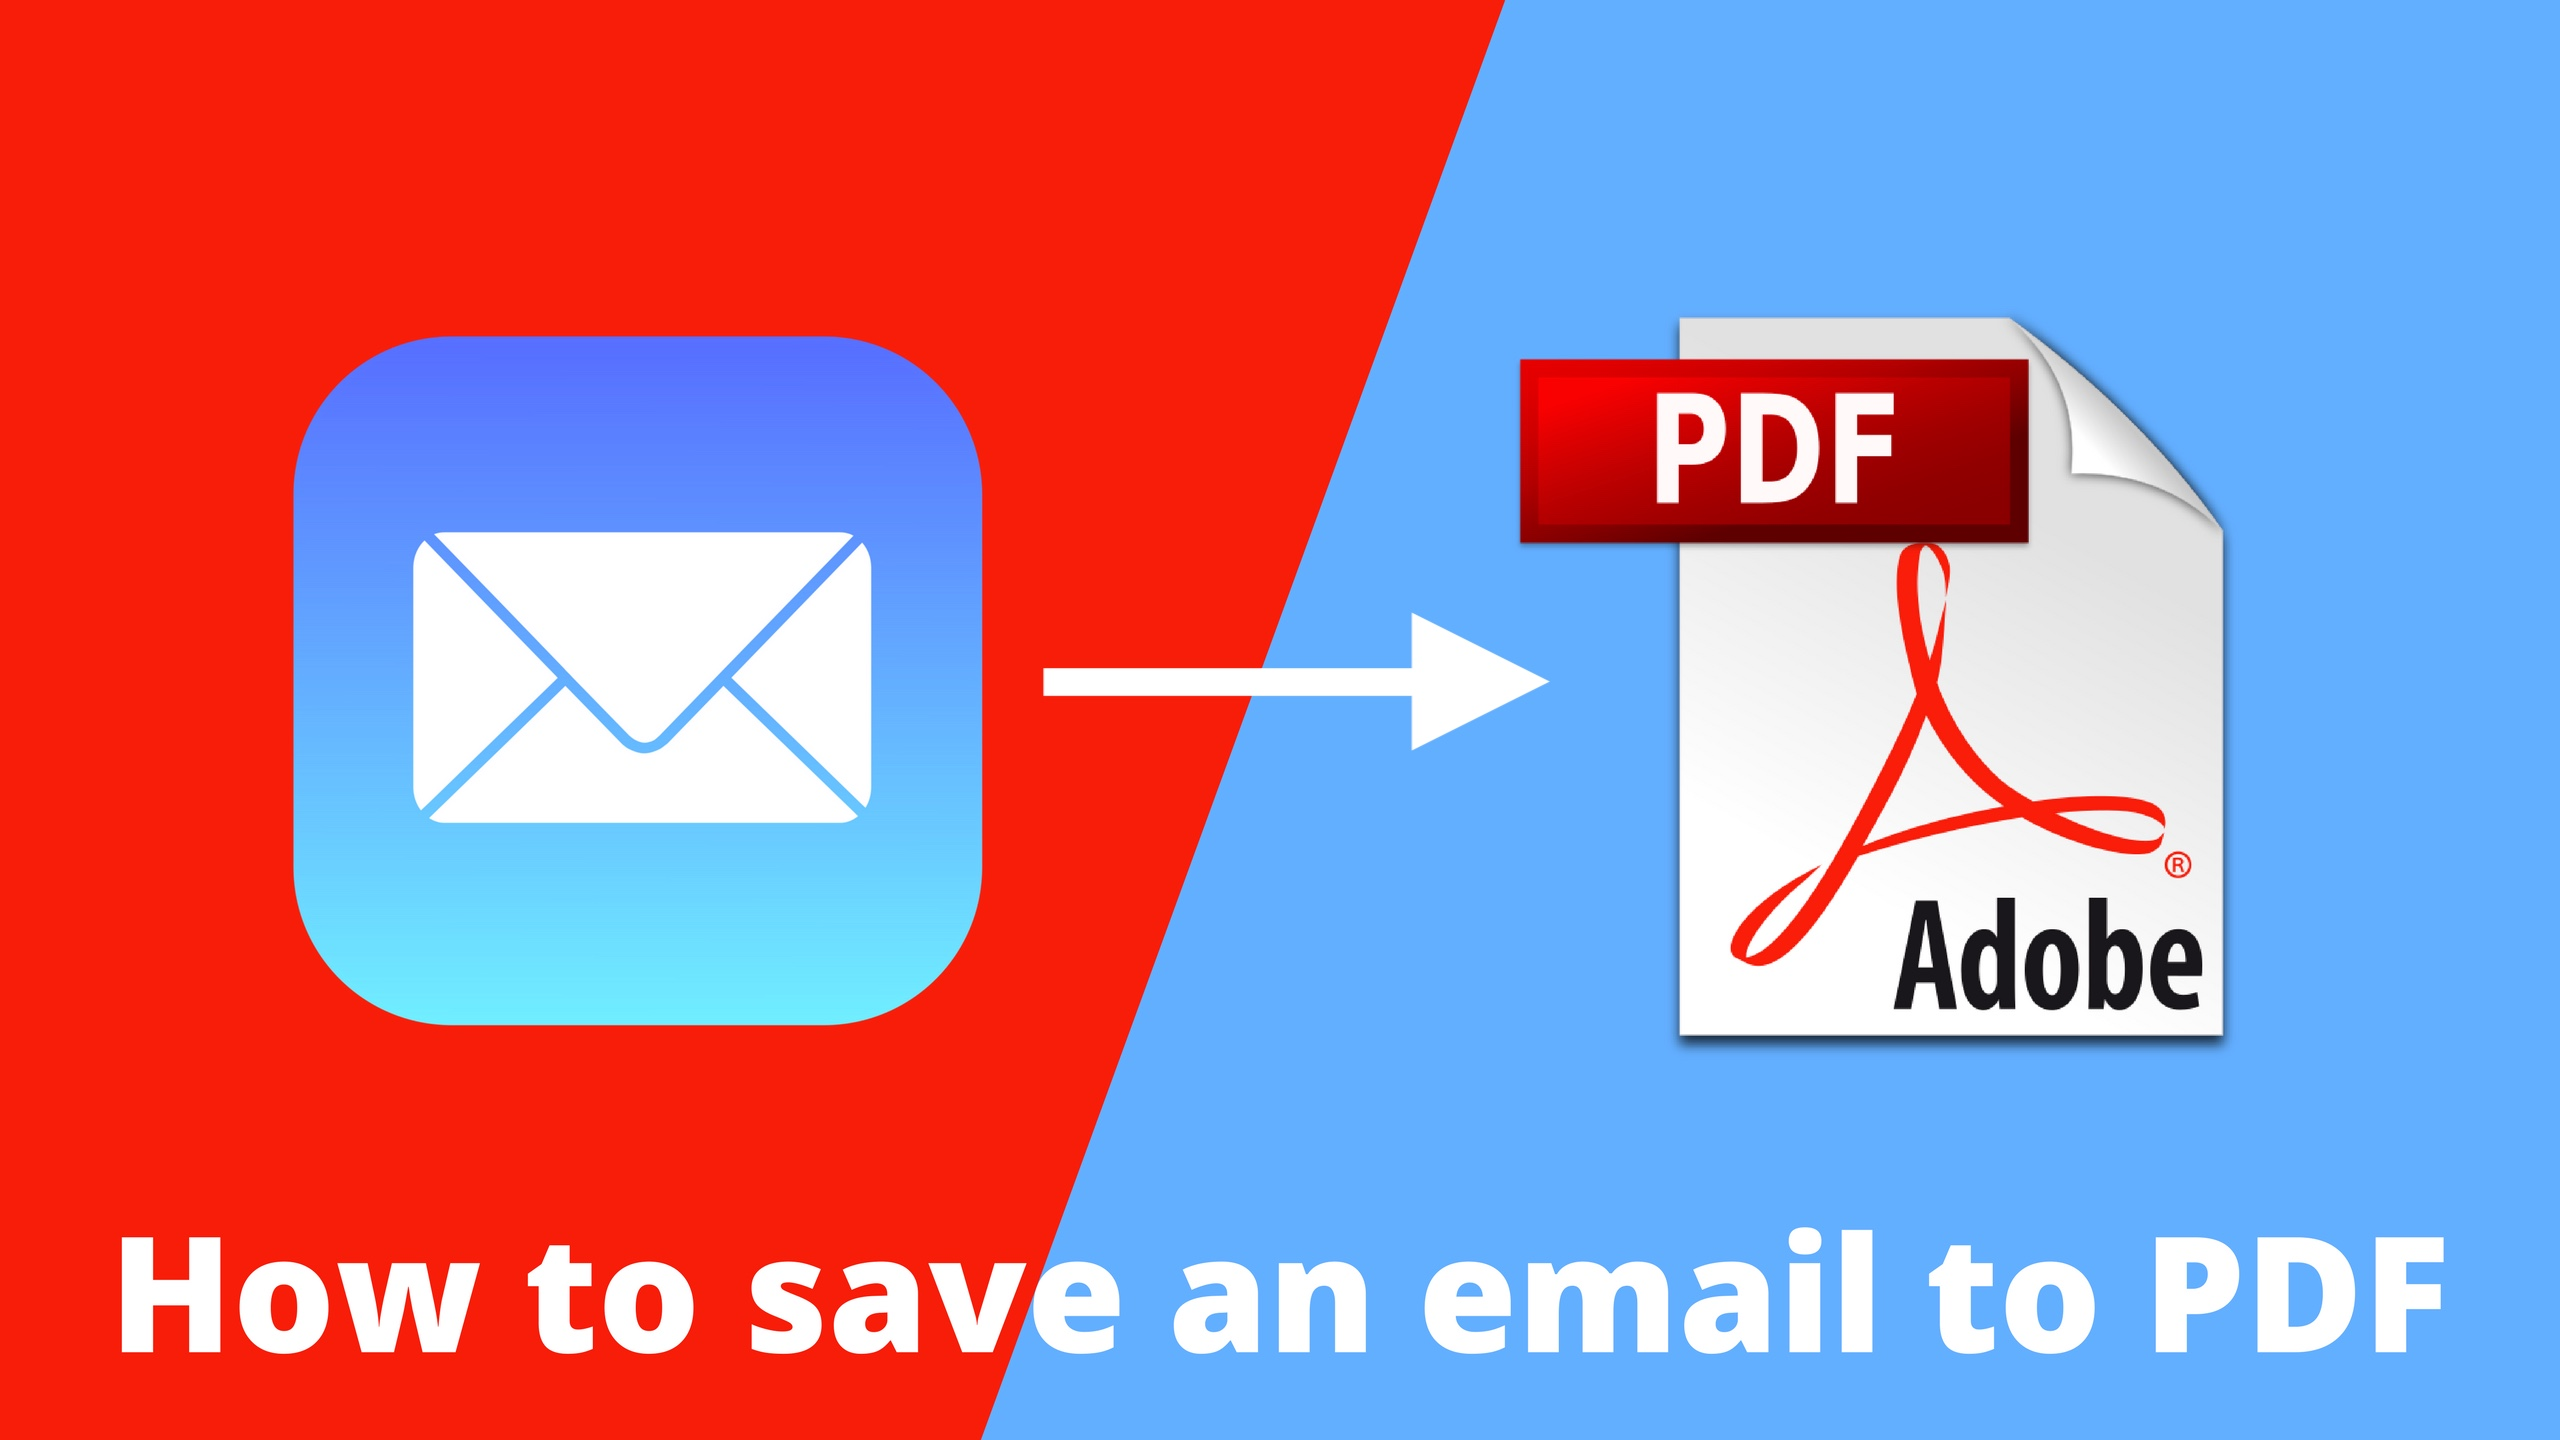 How to save an email to PDF